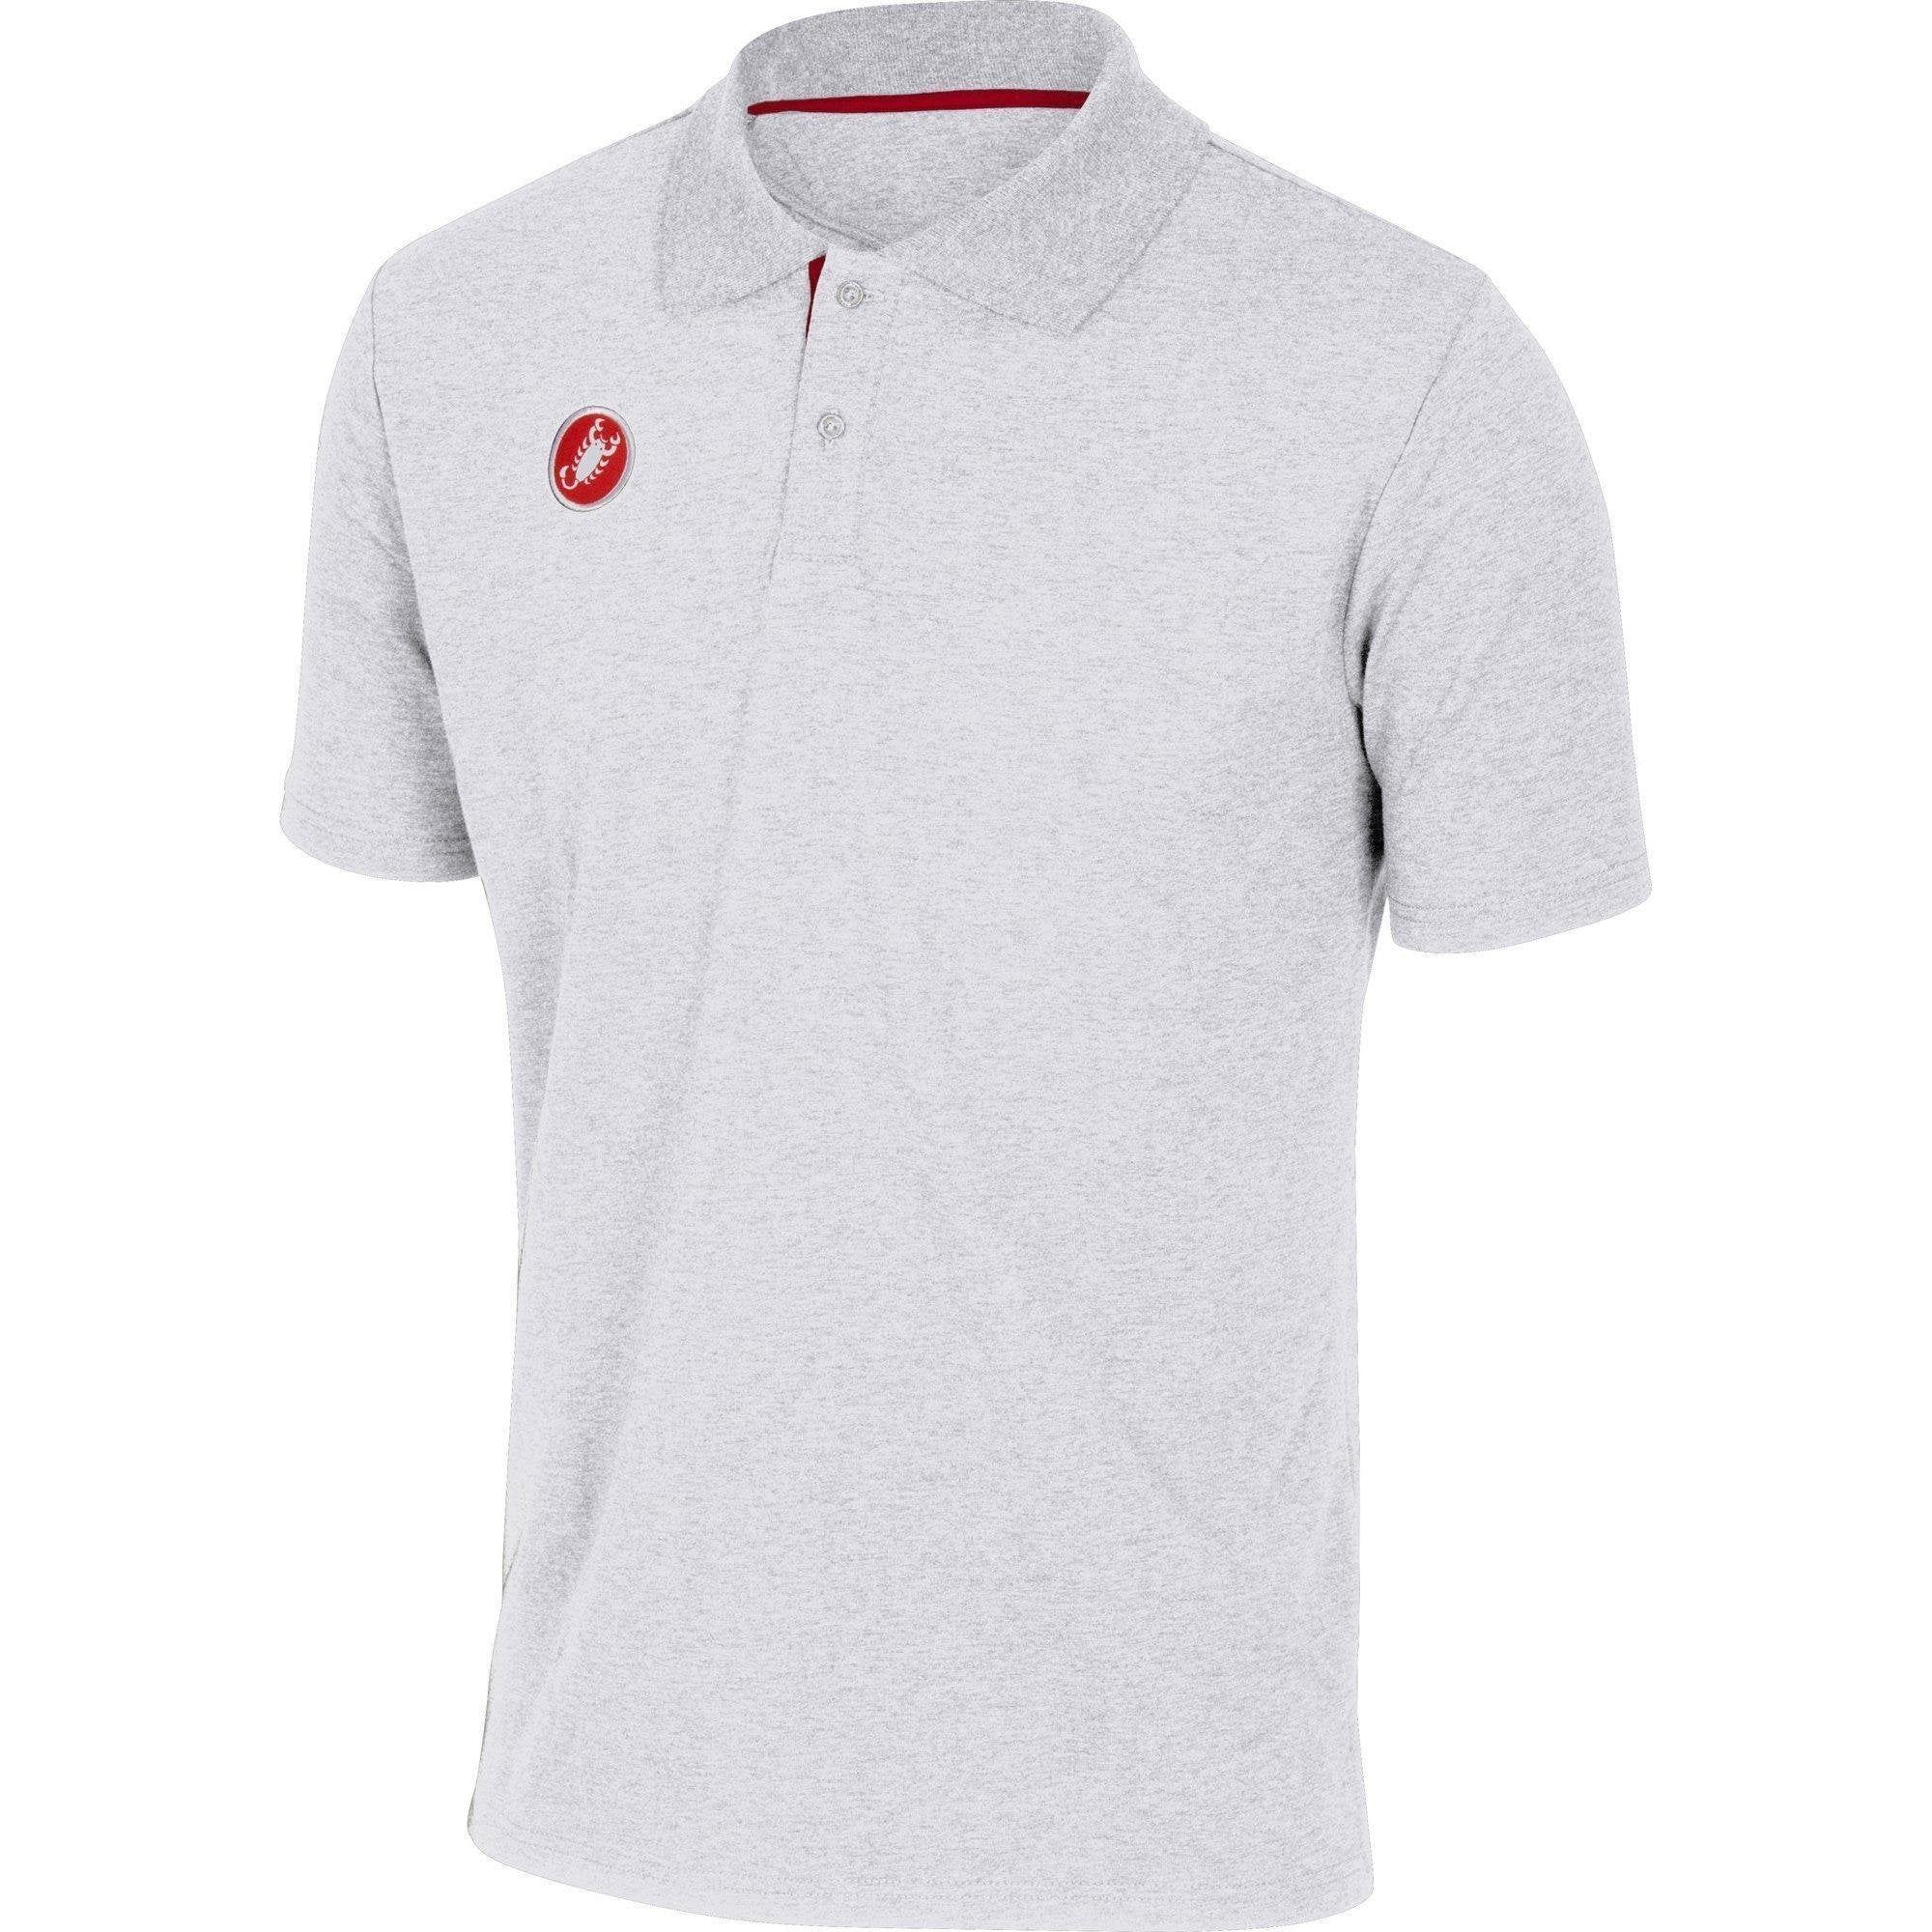 Castelli-Castelli Race Day Polo Shirt-White-S-CS130960012-saddleback-elite-performance-cycling